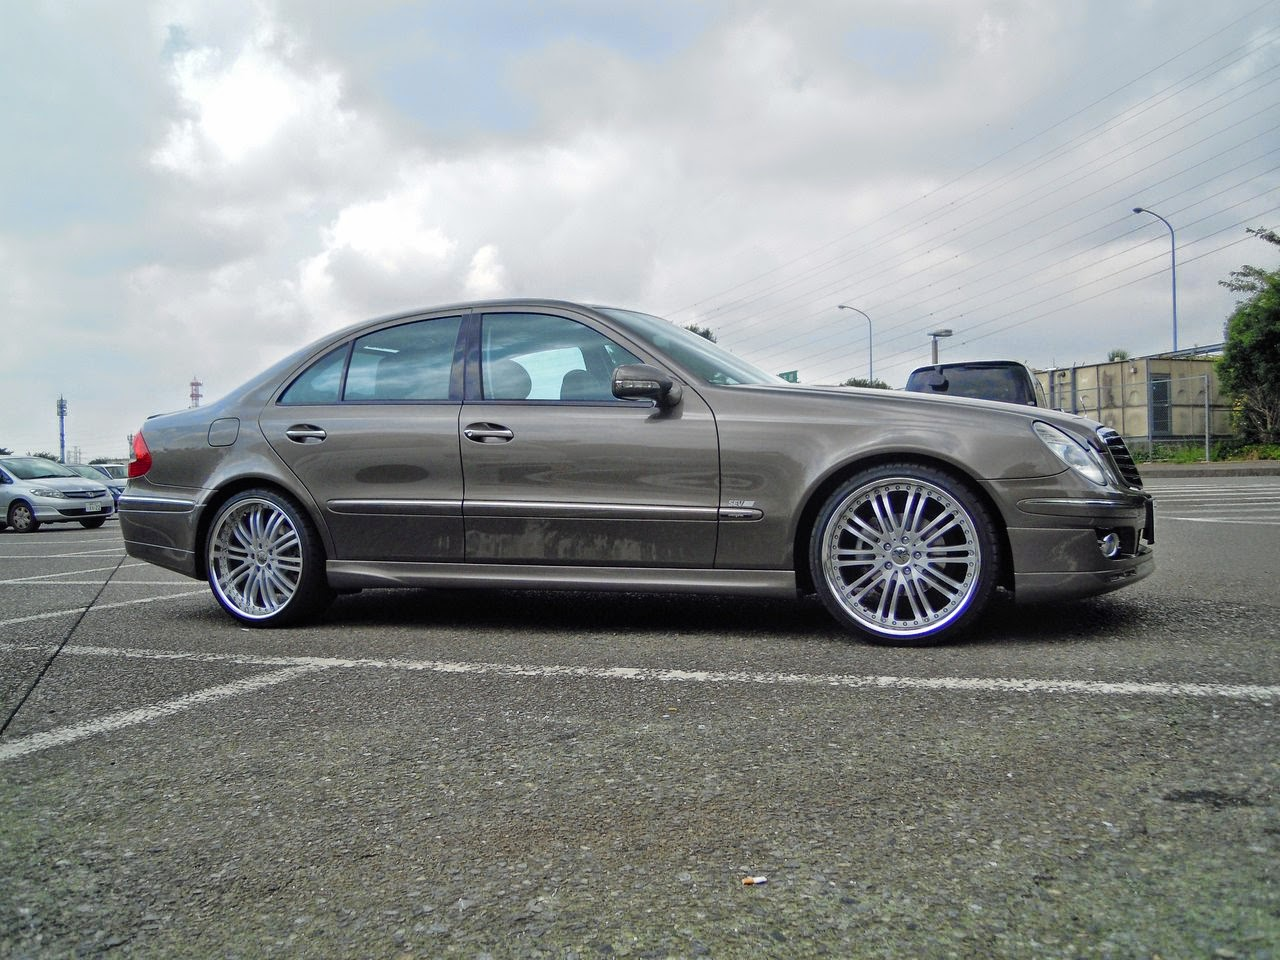 Mercedes benz w211 on auto couture lative wheels benztuning for Mercedes benz wheels rims